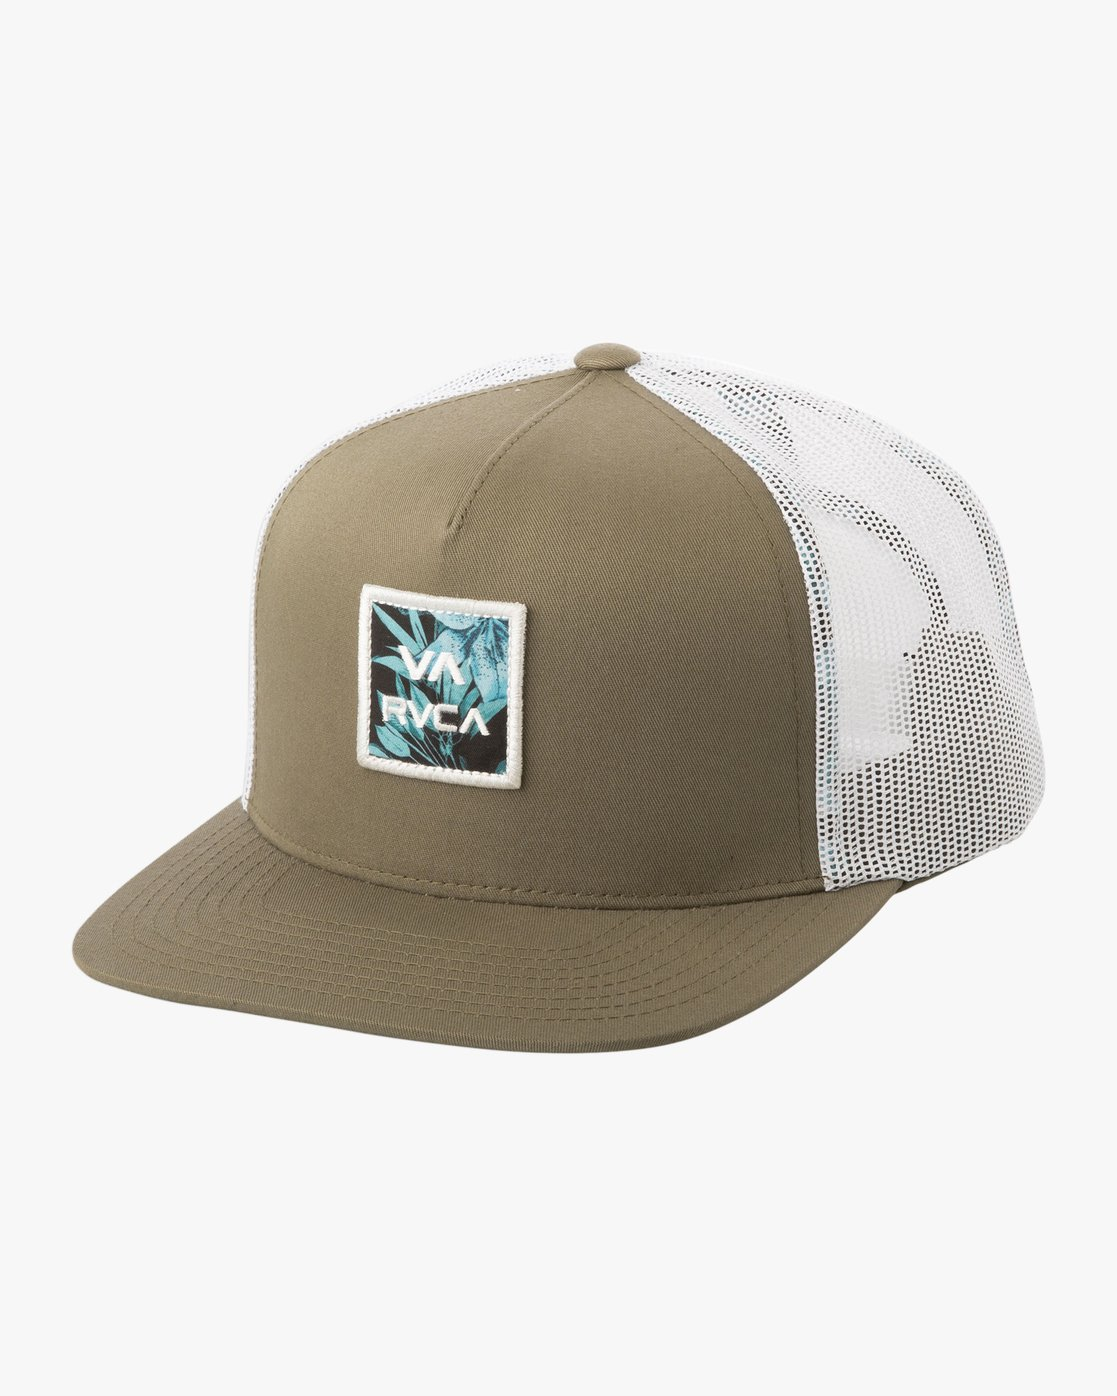 0 Va All The Way Printed Trucker Hat Brown N5CPRERVP9 RVCA